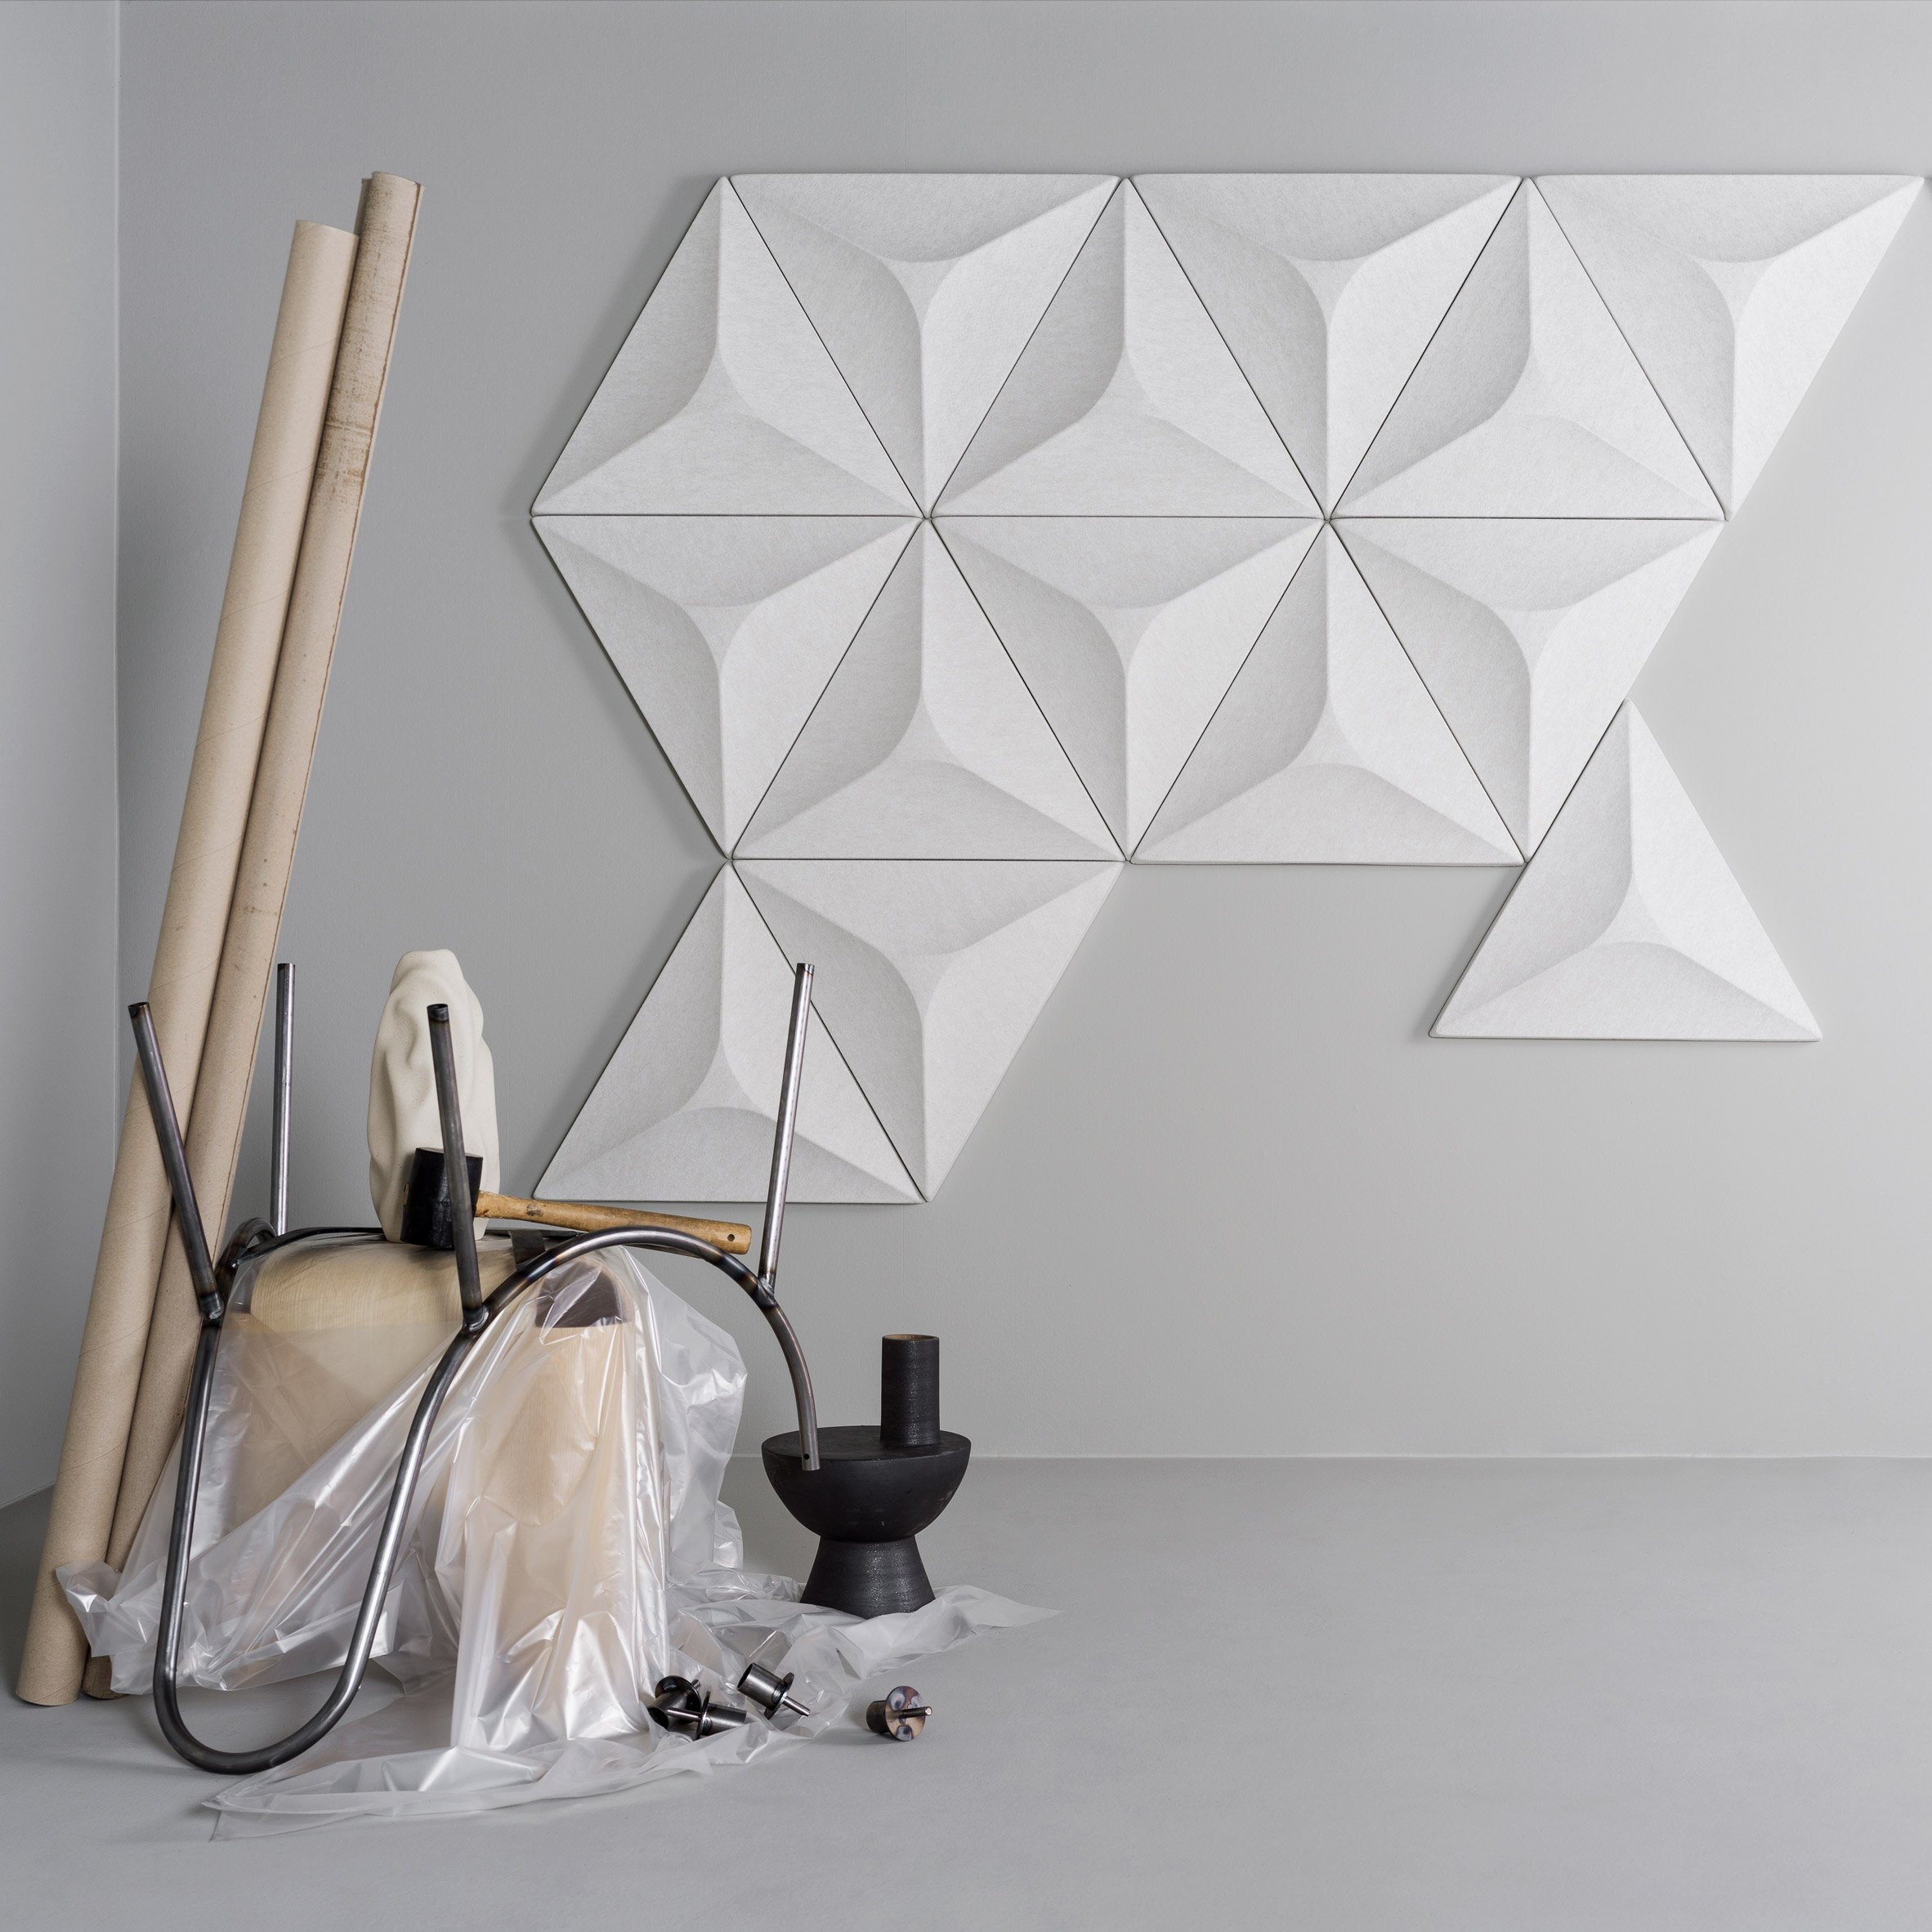 A group of geometric acoustic panels